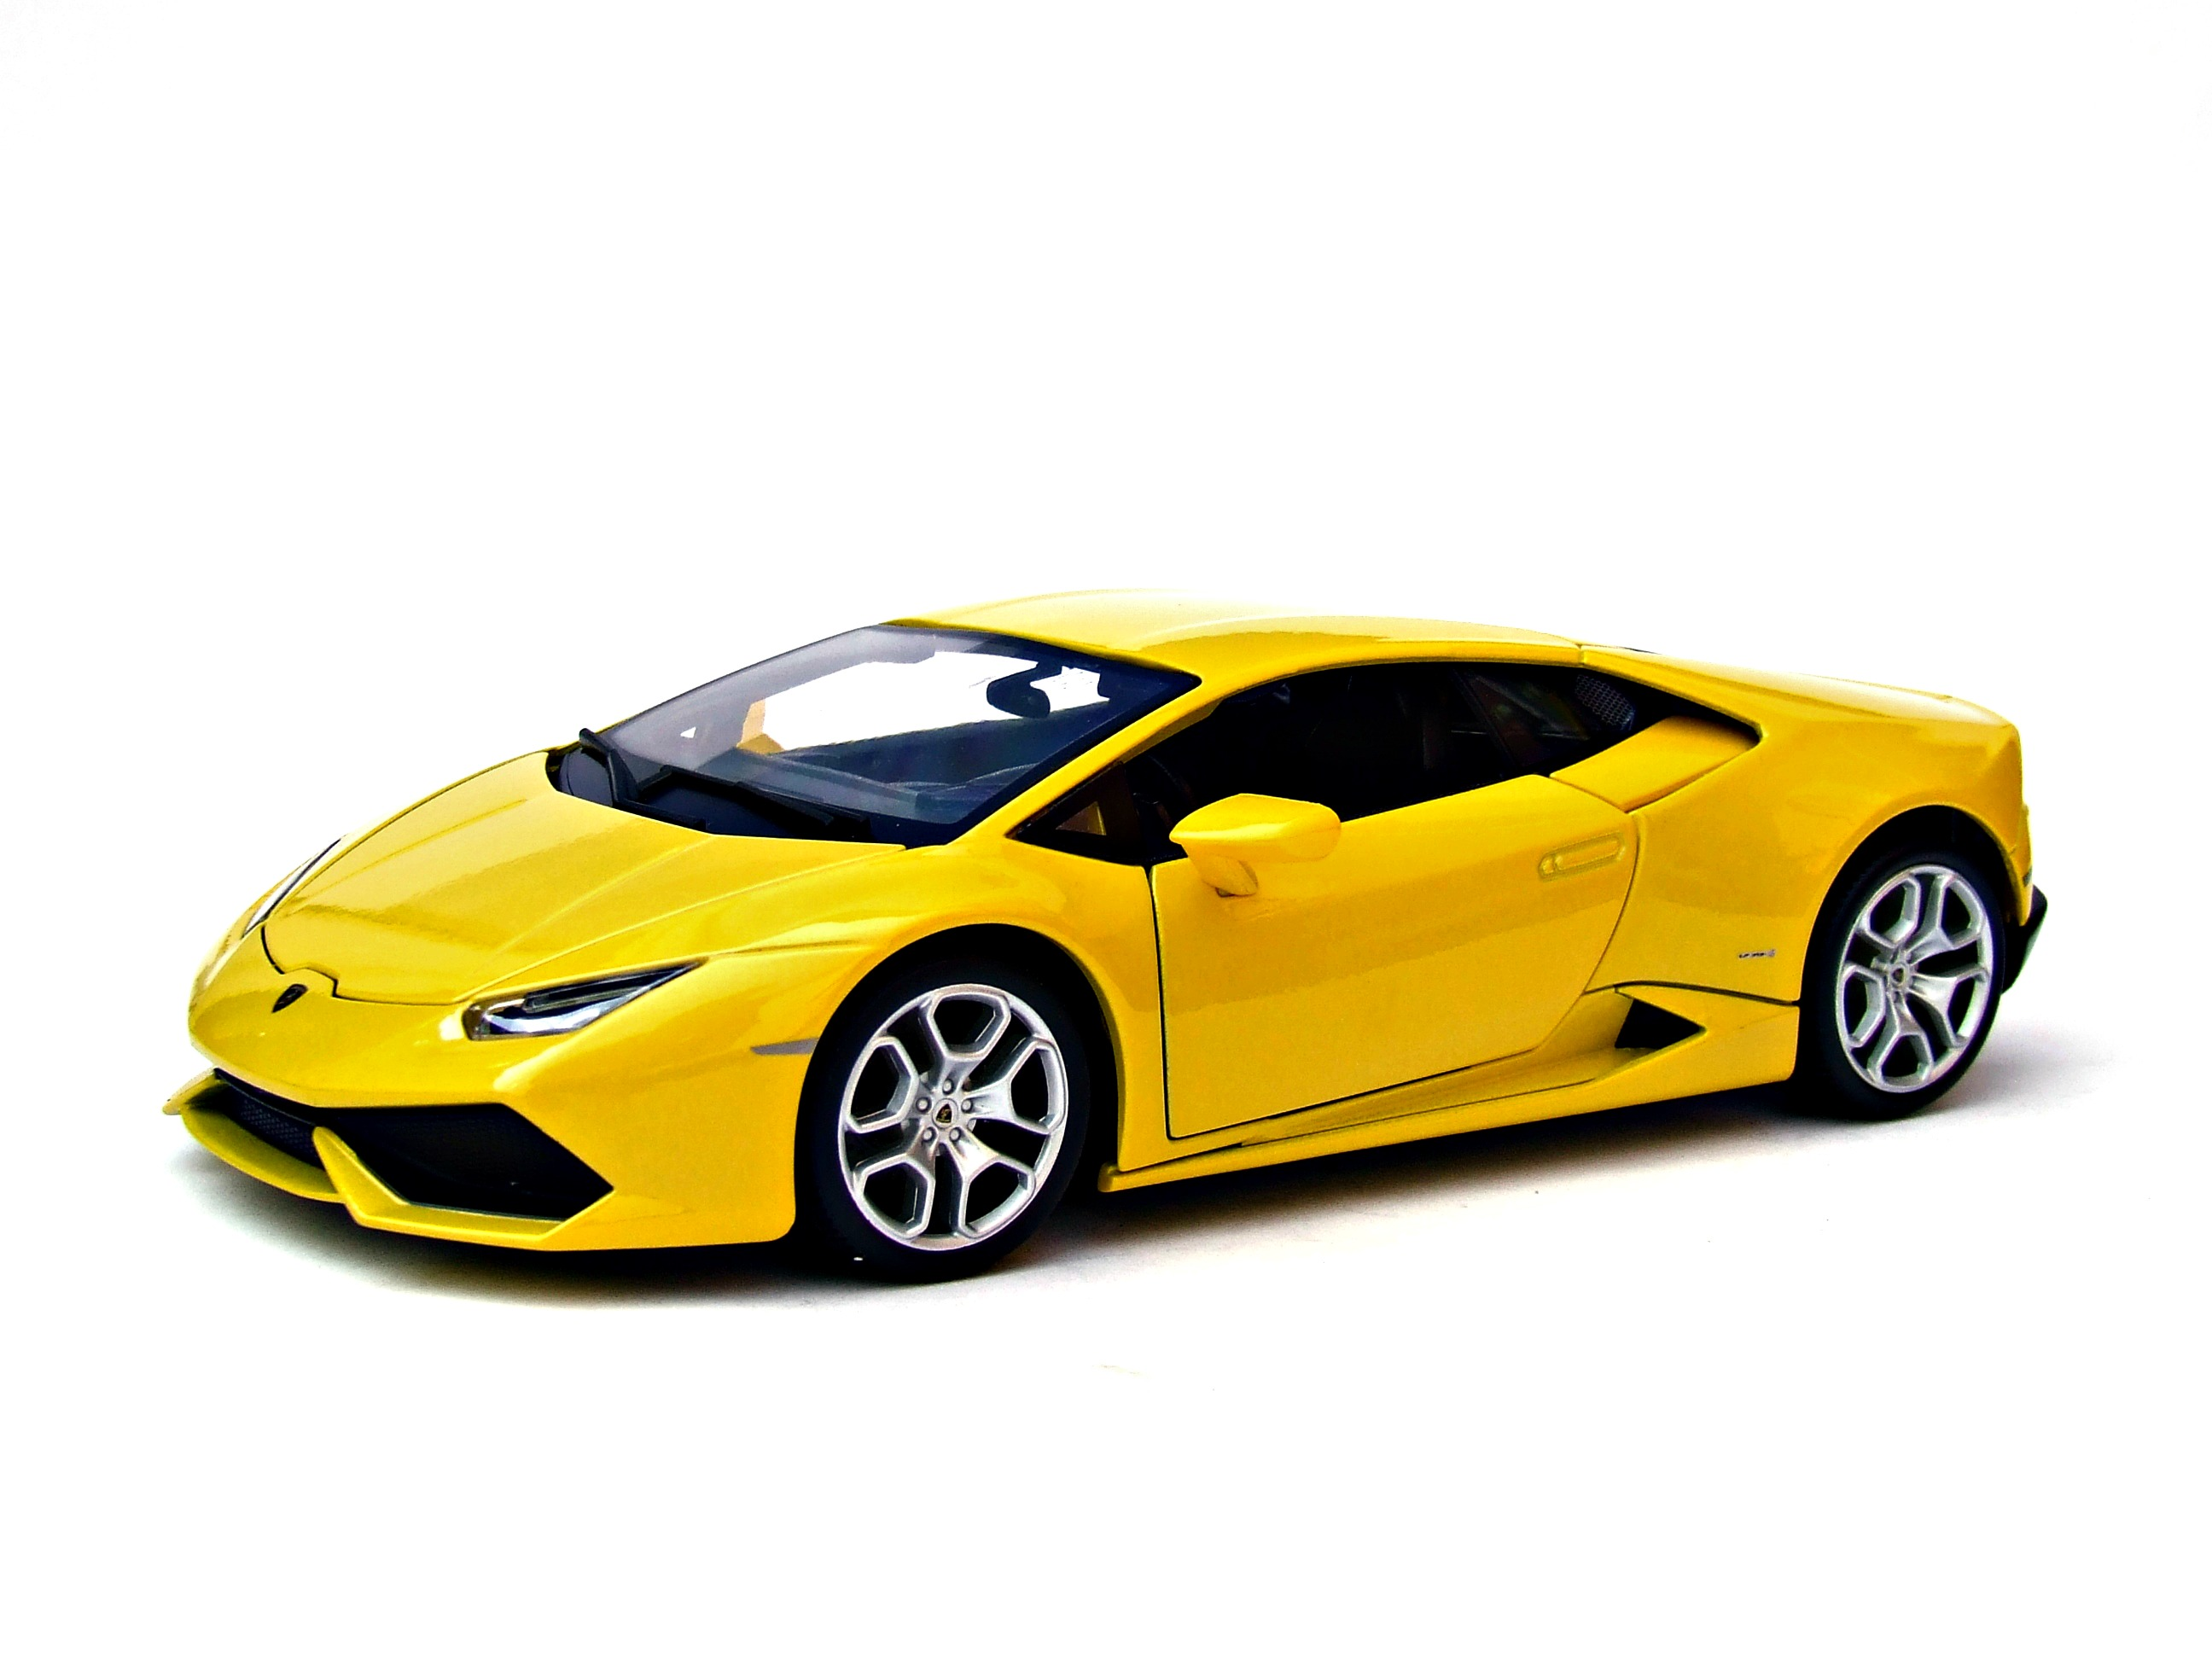 rc lamborghini for sale with Bburago 11038y Lamborghini Huracan Lp610 4 Gelb on 1044178 ultima Gtr Building The Ultimate Street Legal Race Car additionally Vendetta V 7C4r 7C9SE48UOinGxLfNh7C34l UvmvOuHO1NrFKbZQ4 in addition Furorecars co in addition 1045394 new Bandit Trans Am 2017 Nissan Gt R Engine 2017 Camaro Zl1 Convertible Todays Car News in addition Koenigsegg Agera R.